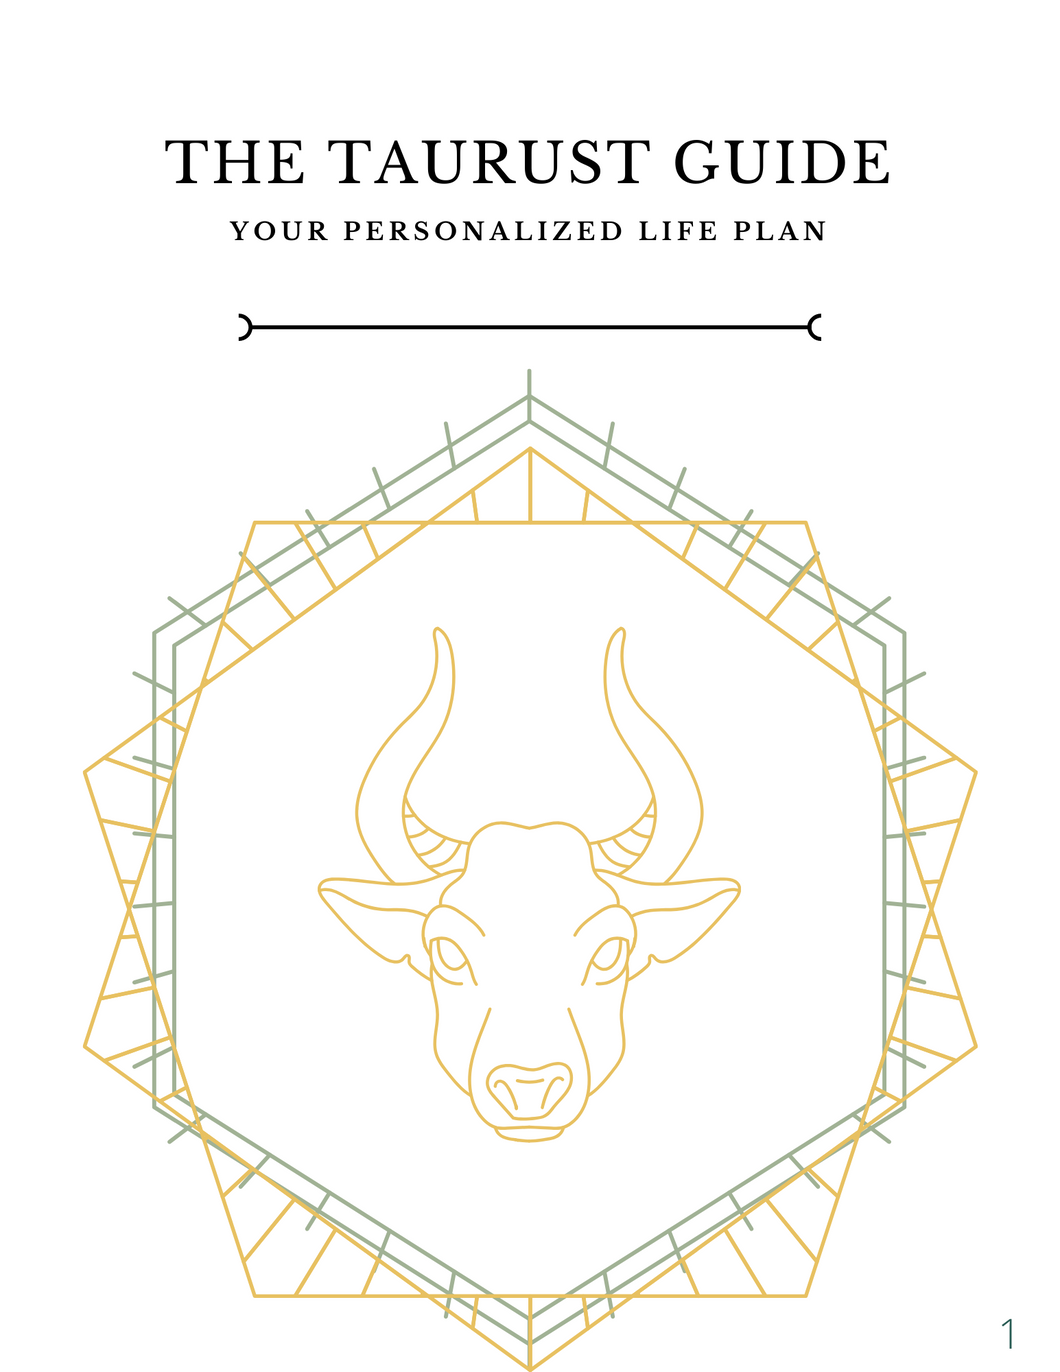 The TAURUST Guide: Digital Download Printable Version